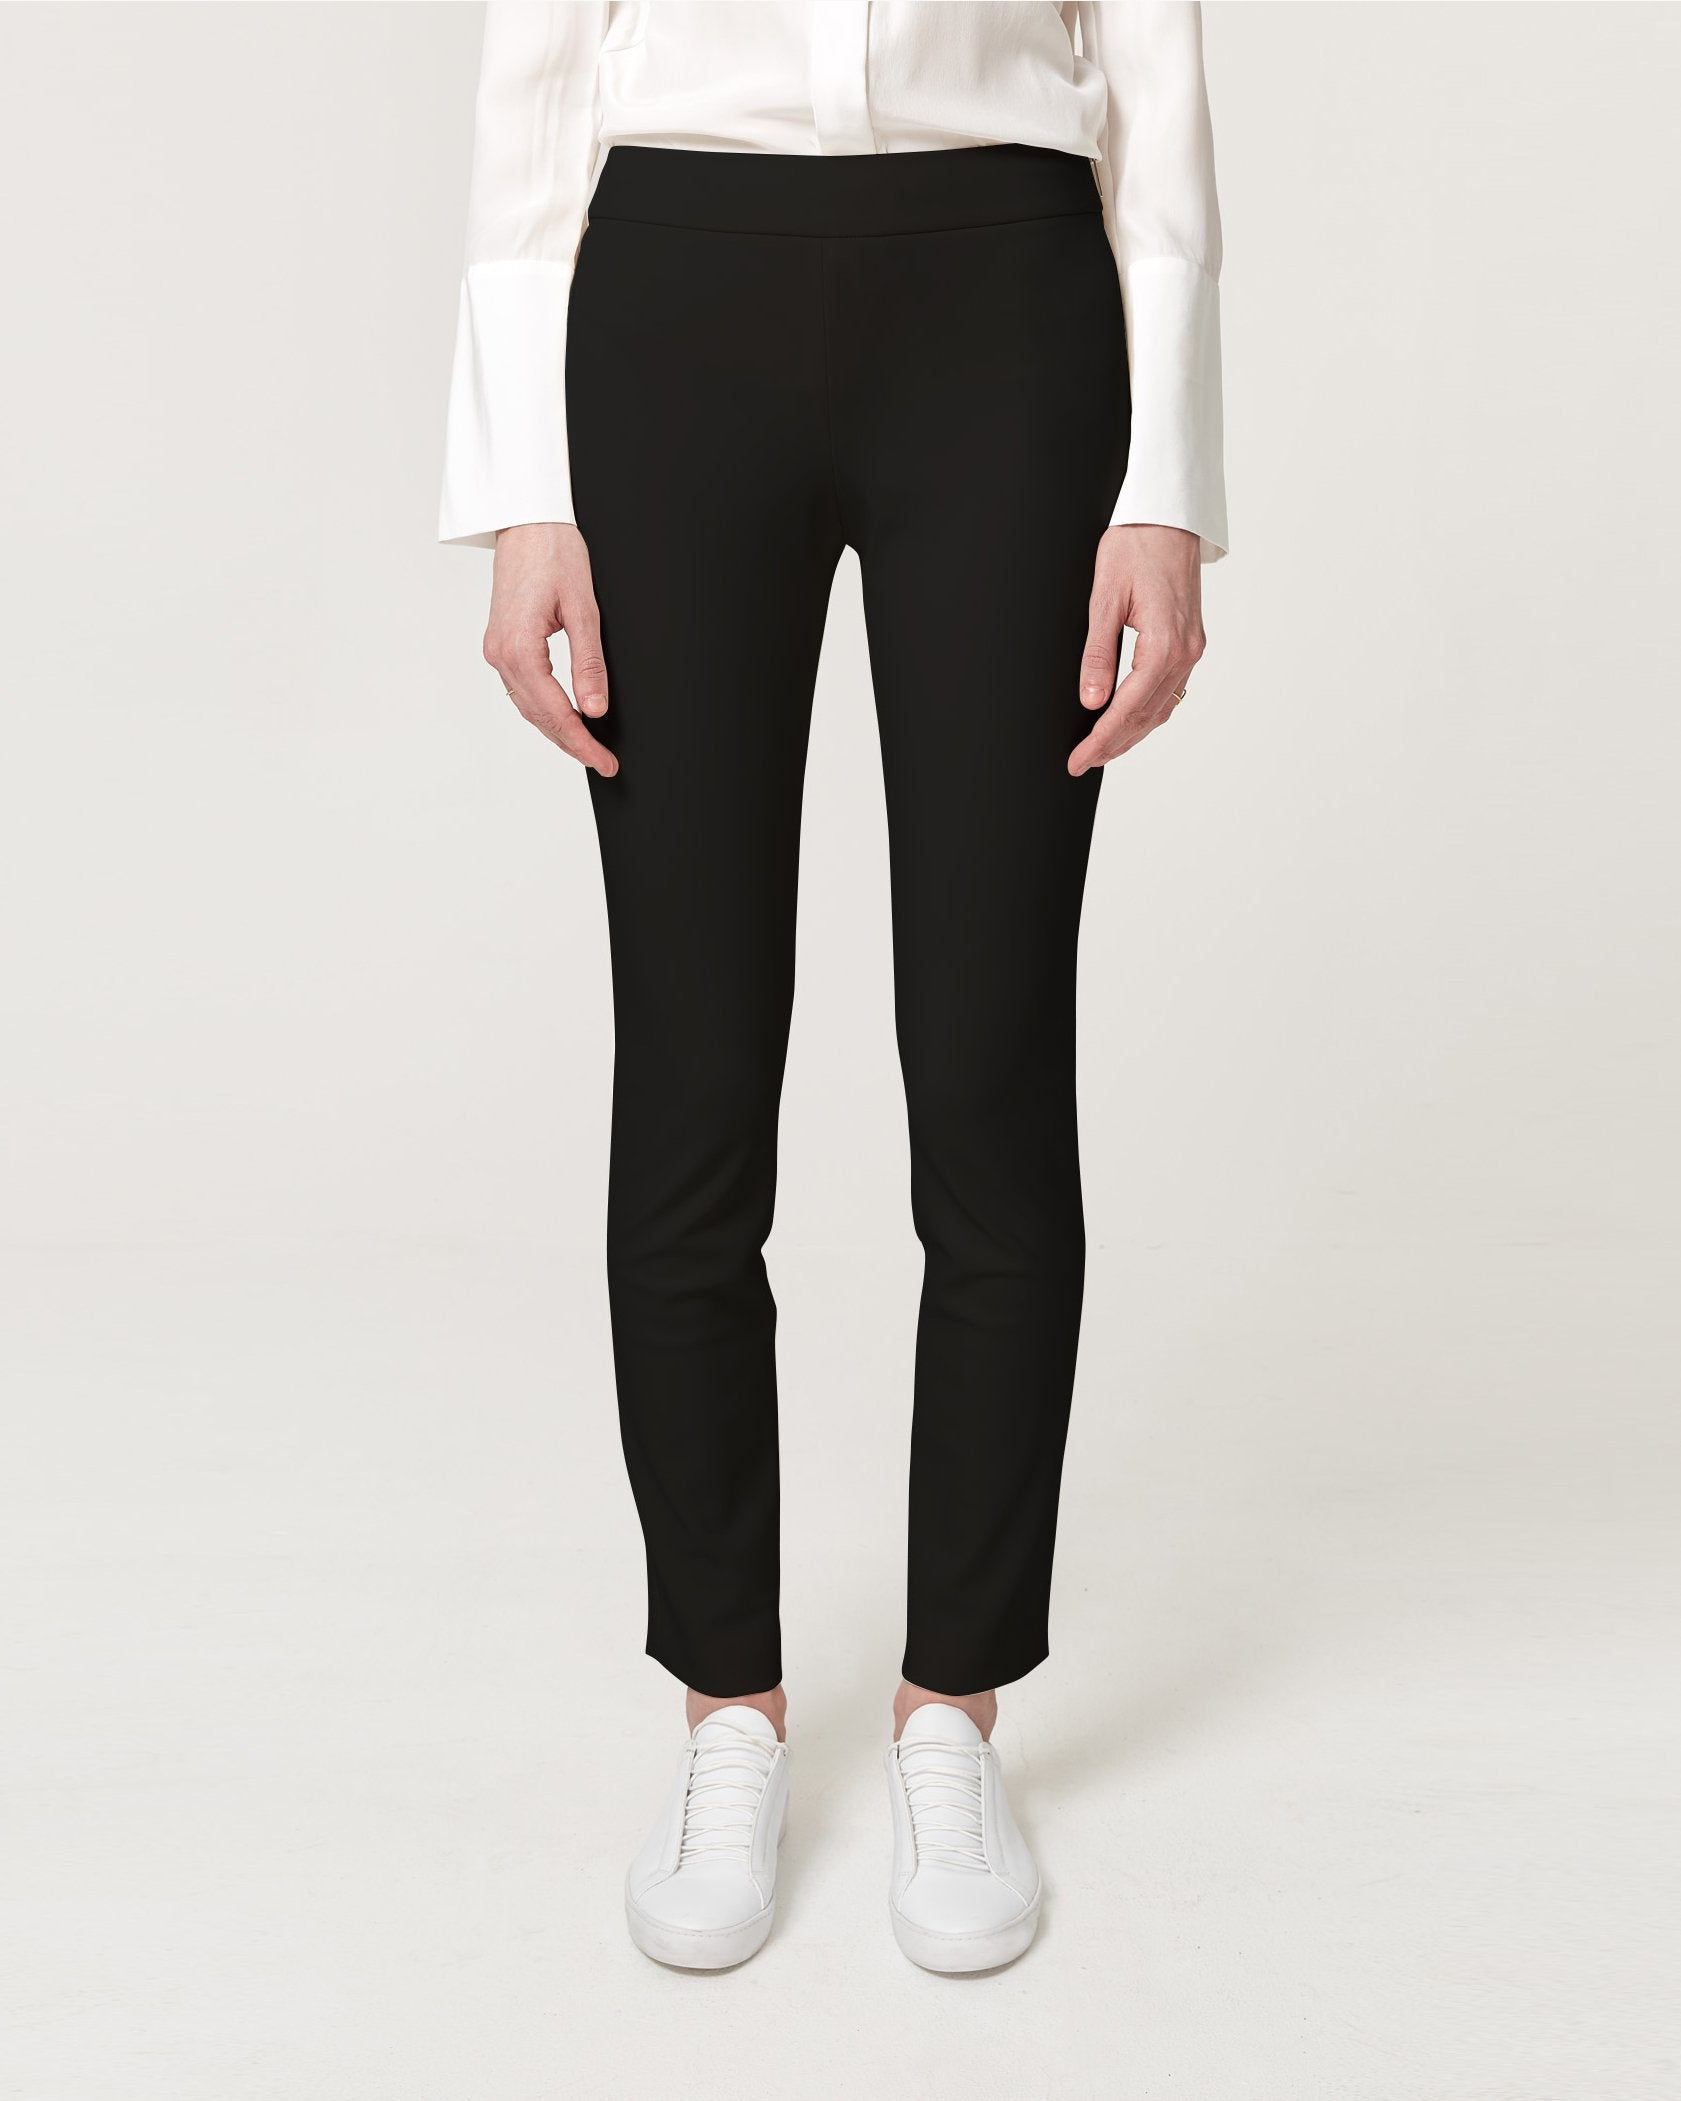 Straight Up Pant Black